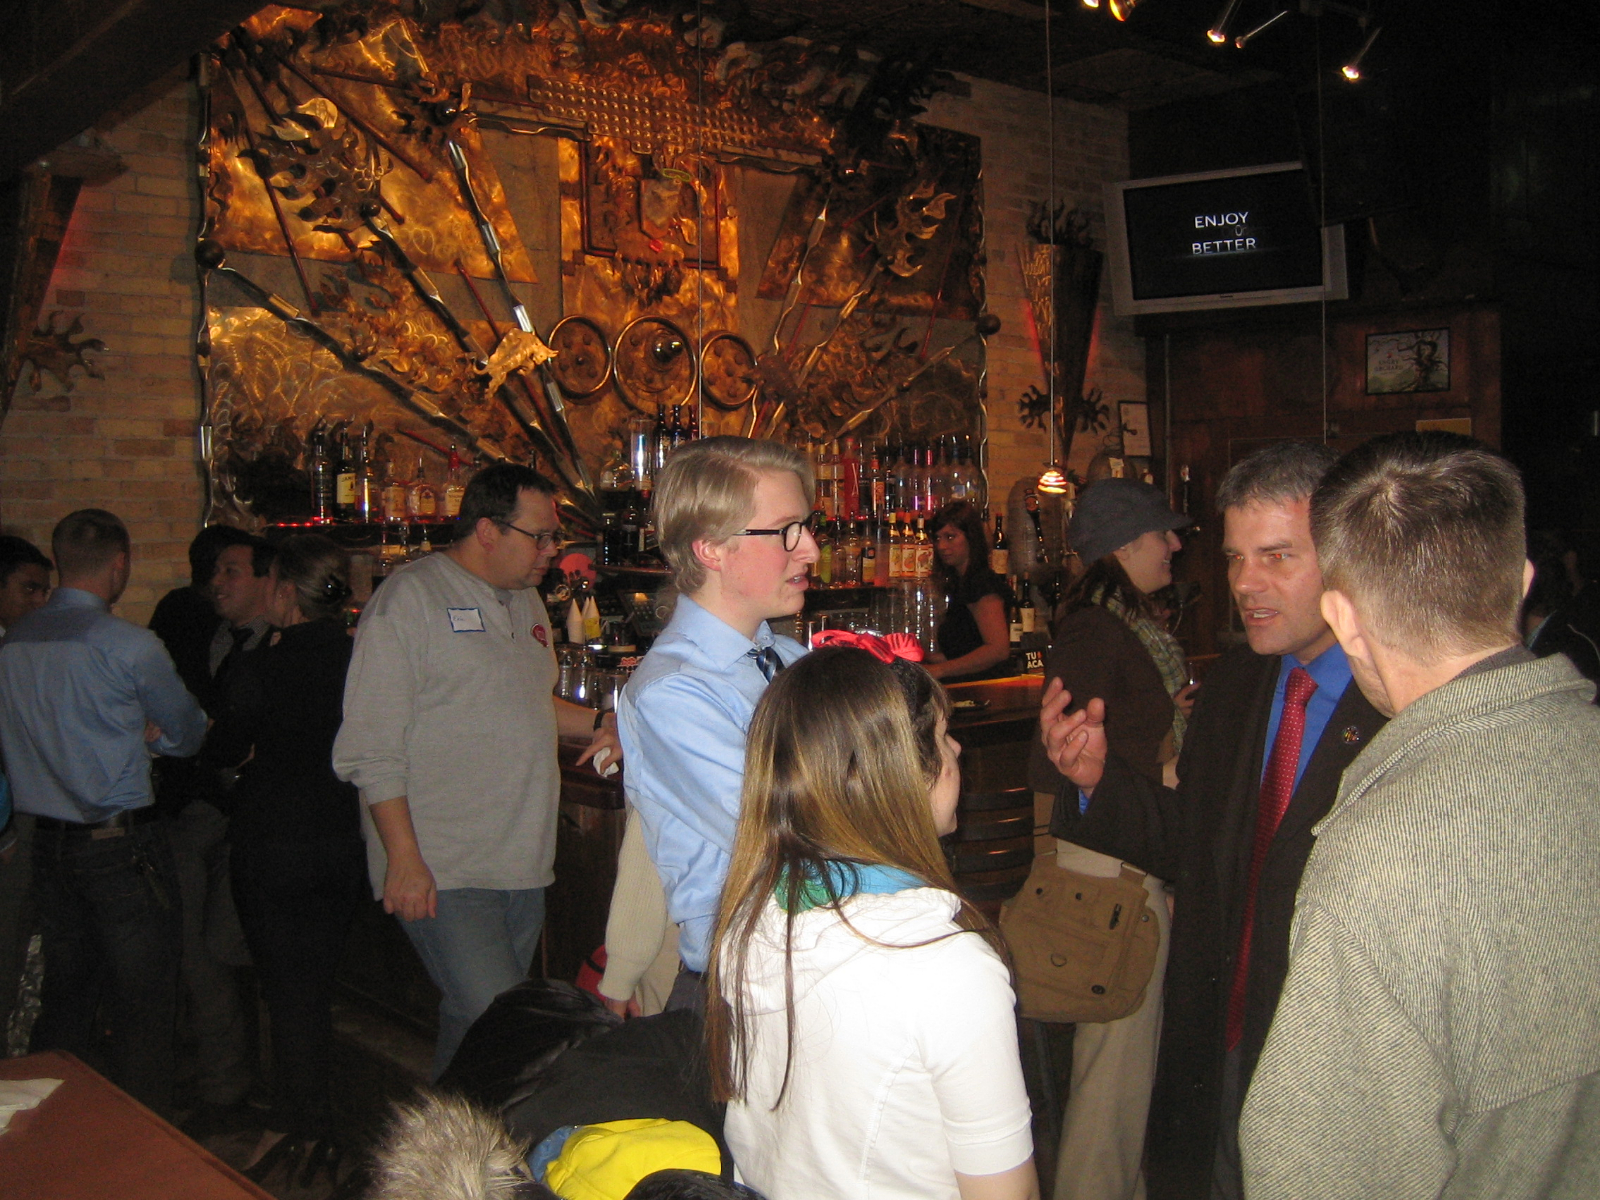 Mingling at the fundraiser.